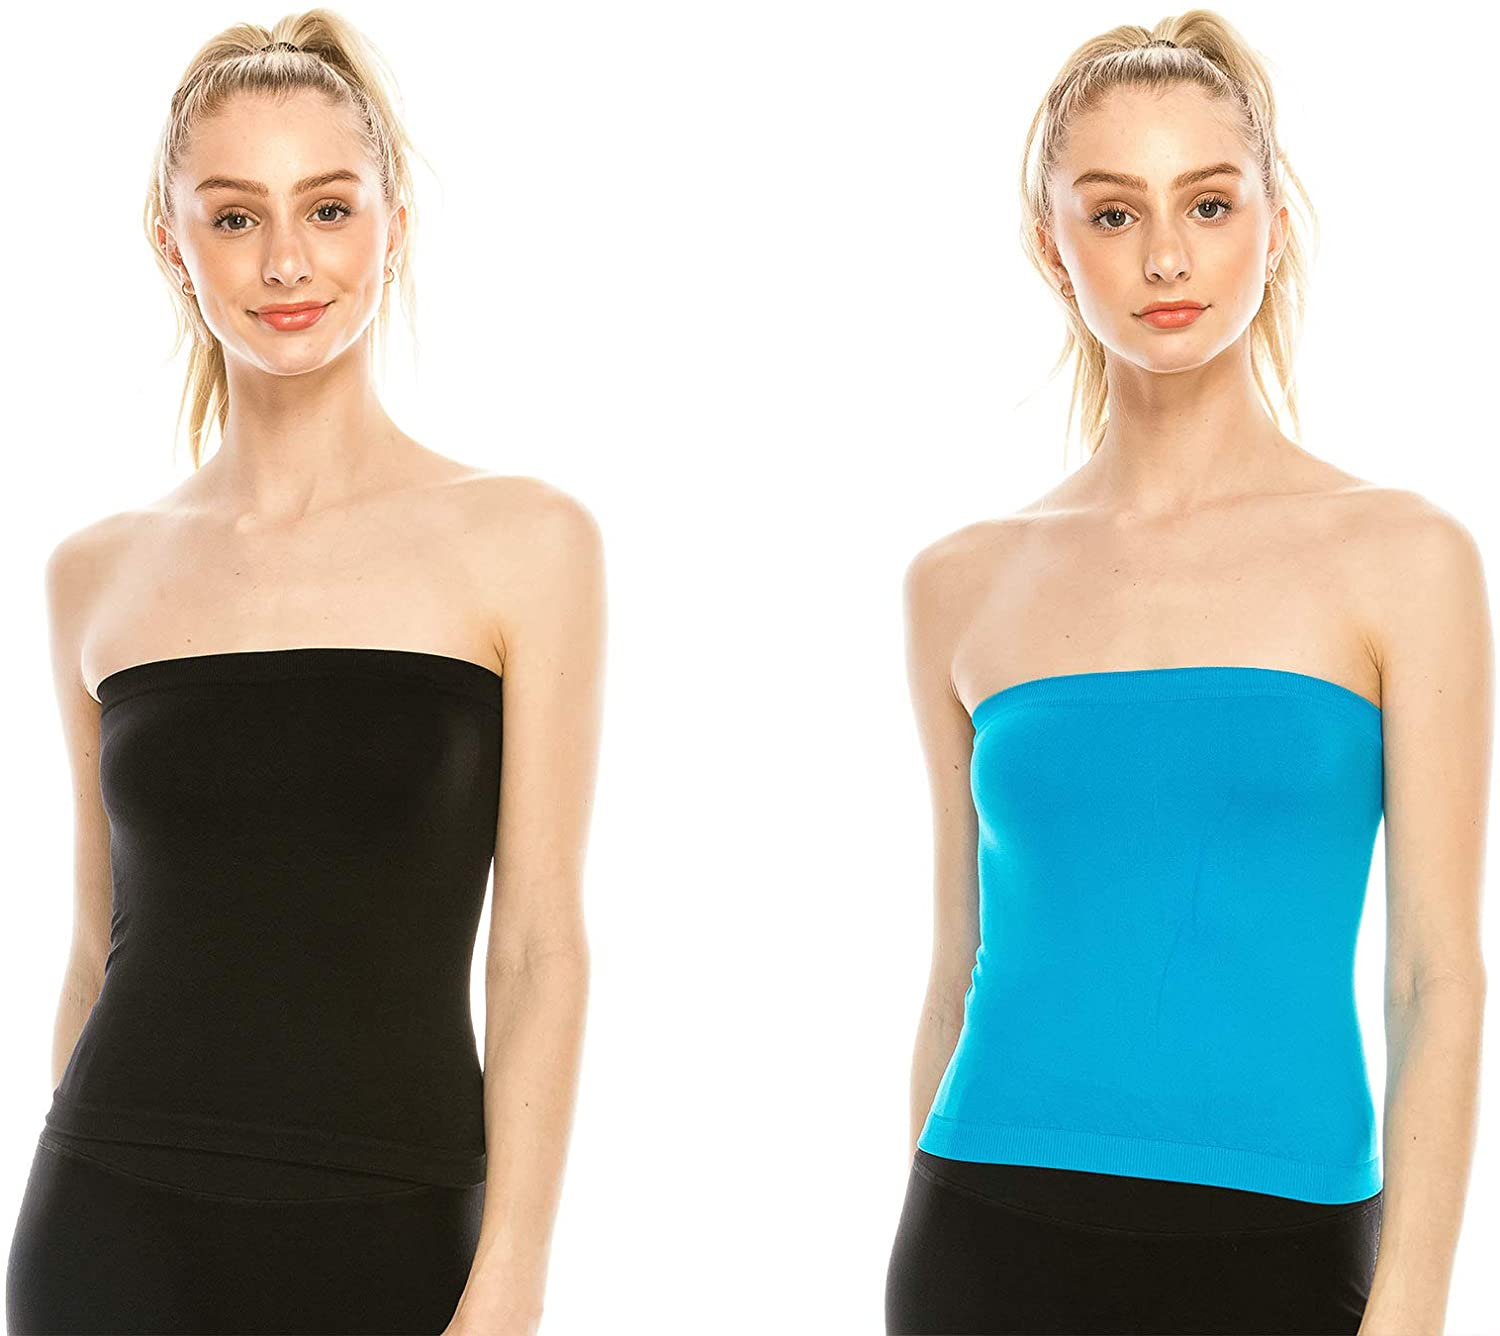 THE TUBE TOP Mini Bandeau Strapless Tube Top, UV Protective Fabric, Rated UPF 50+, Made in USA